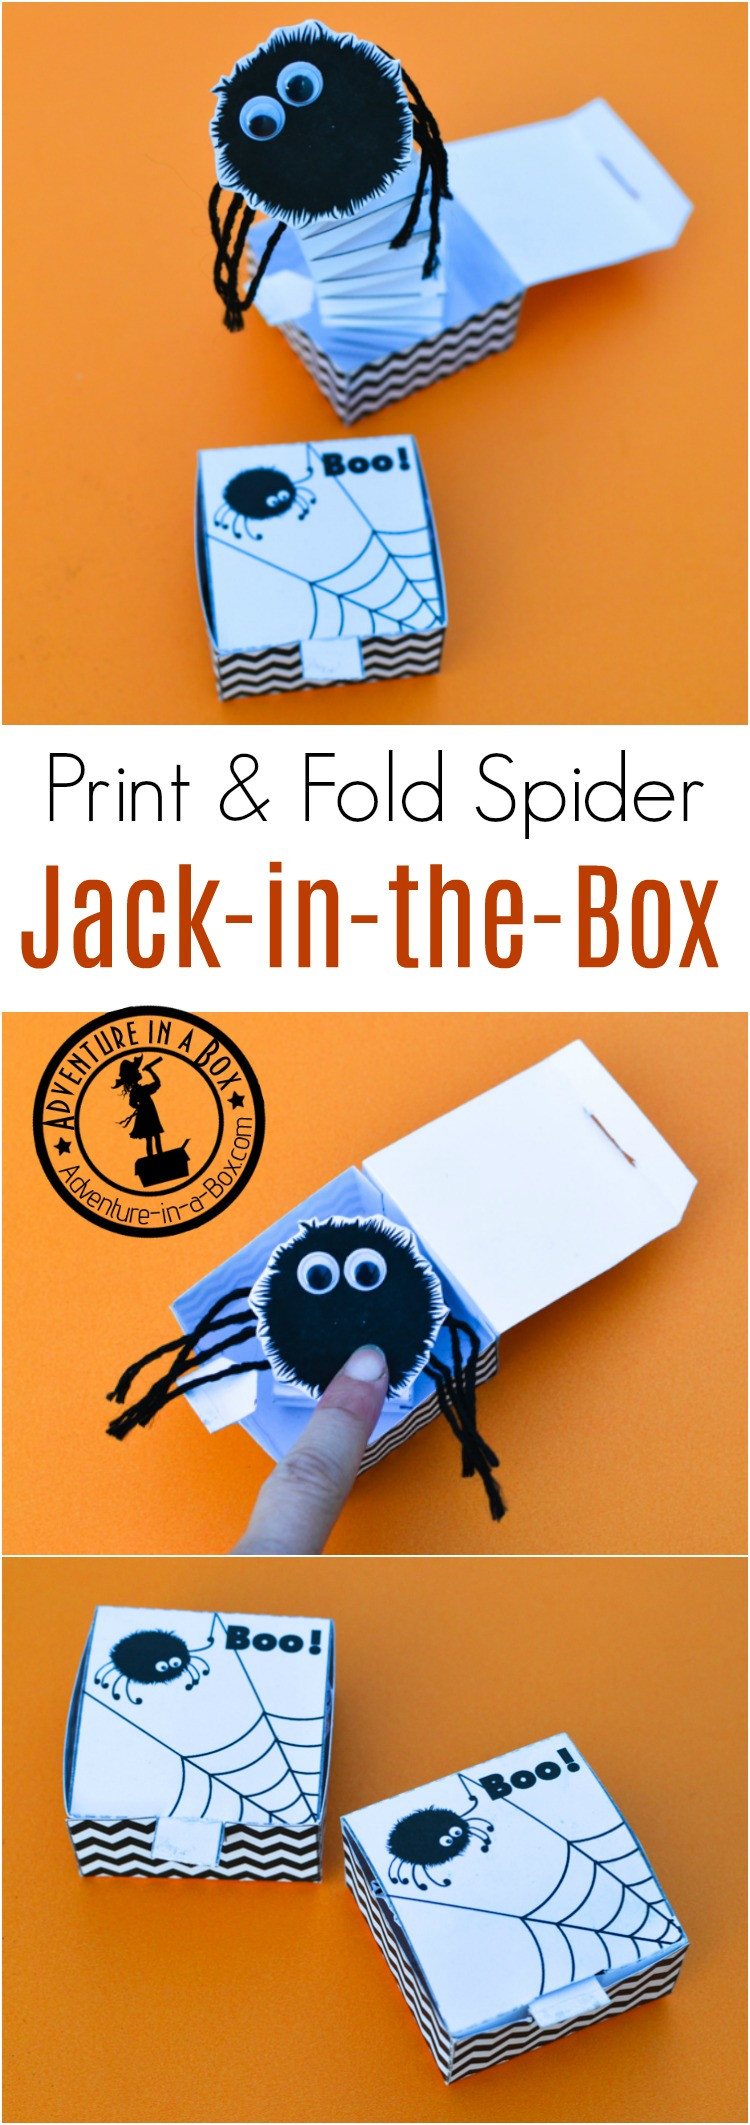 Best ideas about DIY Jack In The Box . Save or Pin Spider Jack in the Box Free Printable Toy Now.